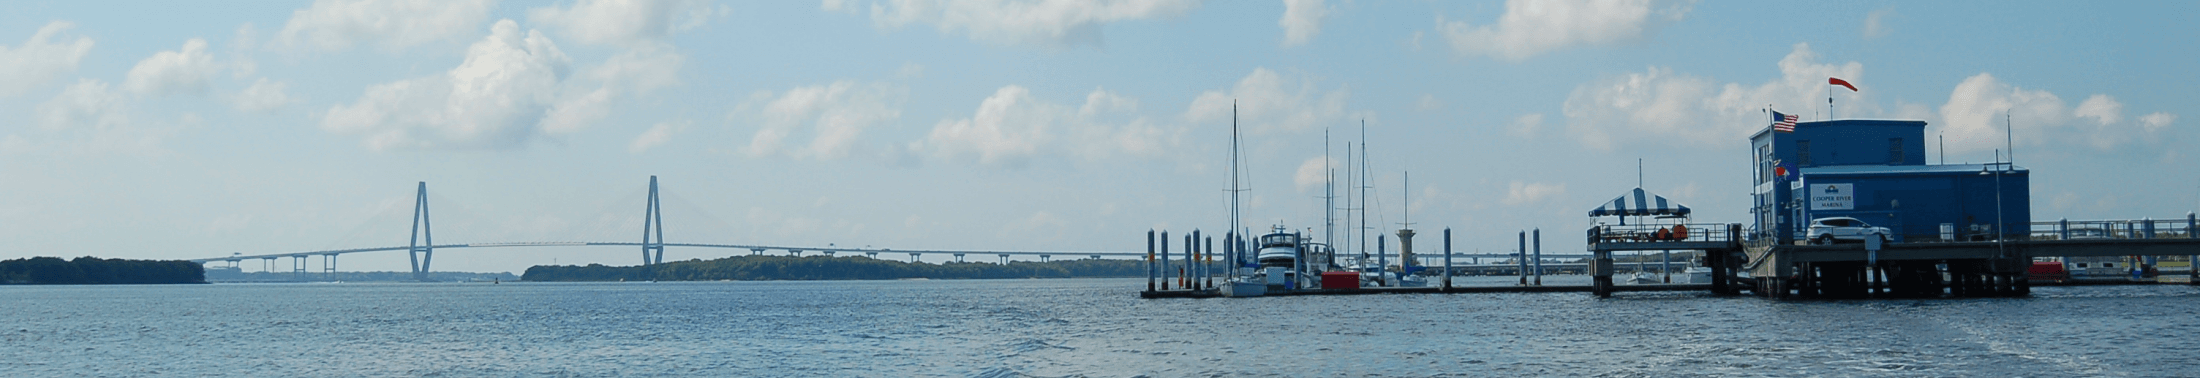 View of the Ravenel Bridge, the water and the marina at Cooper River County Park